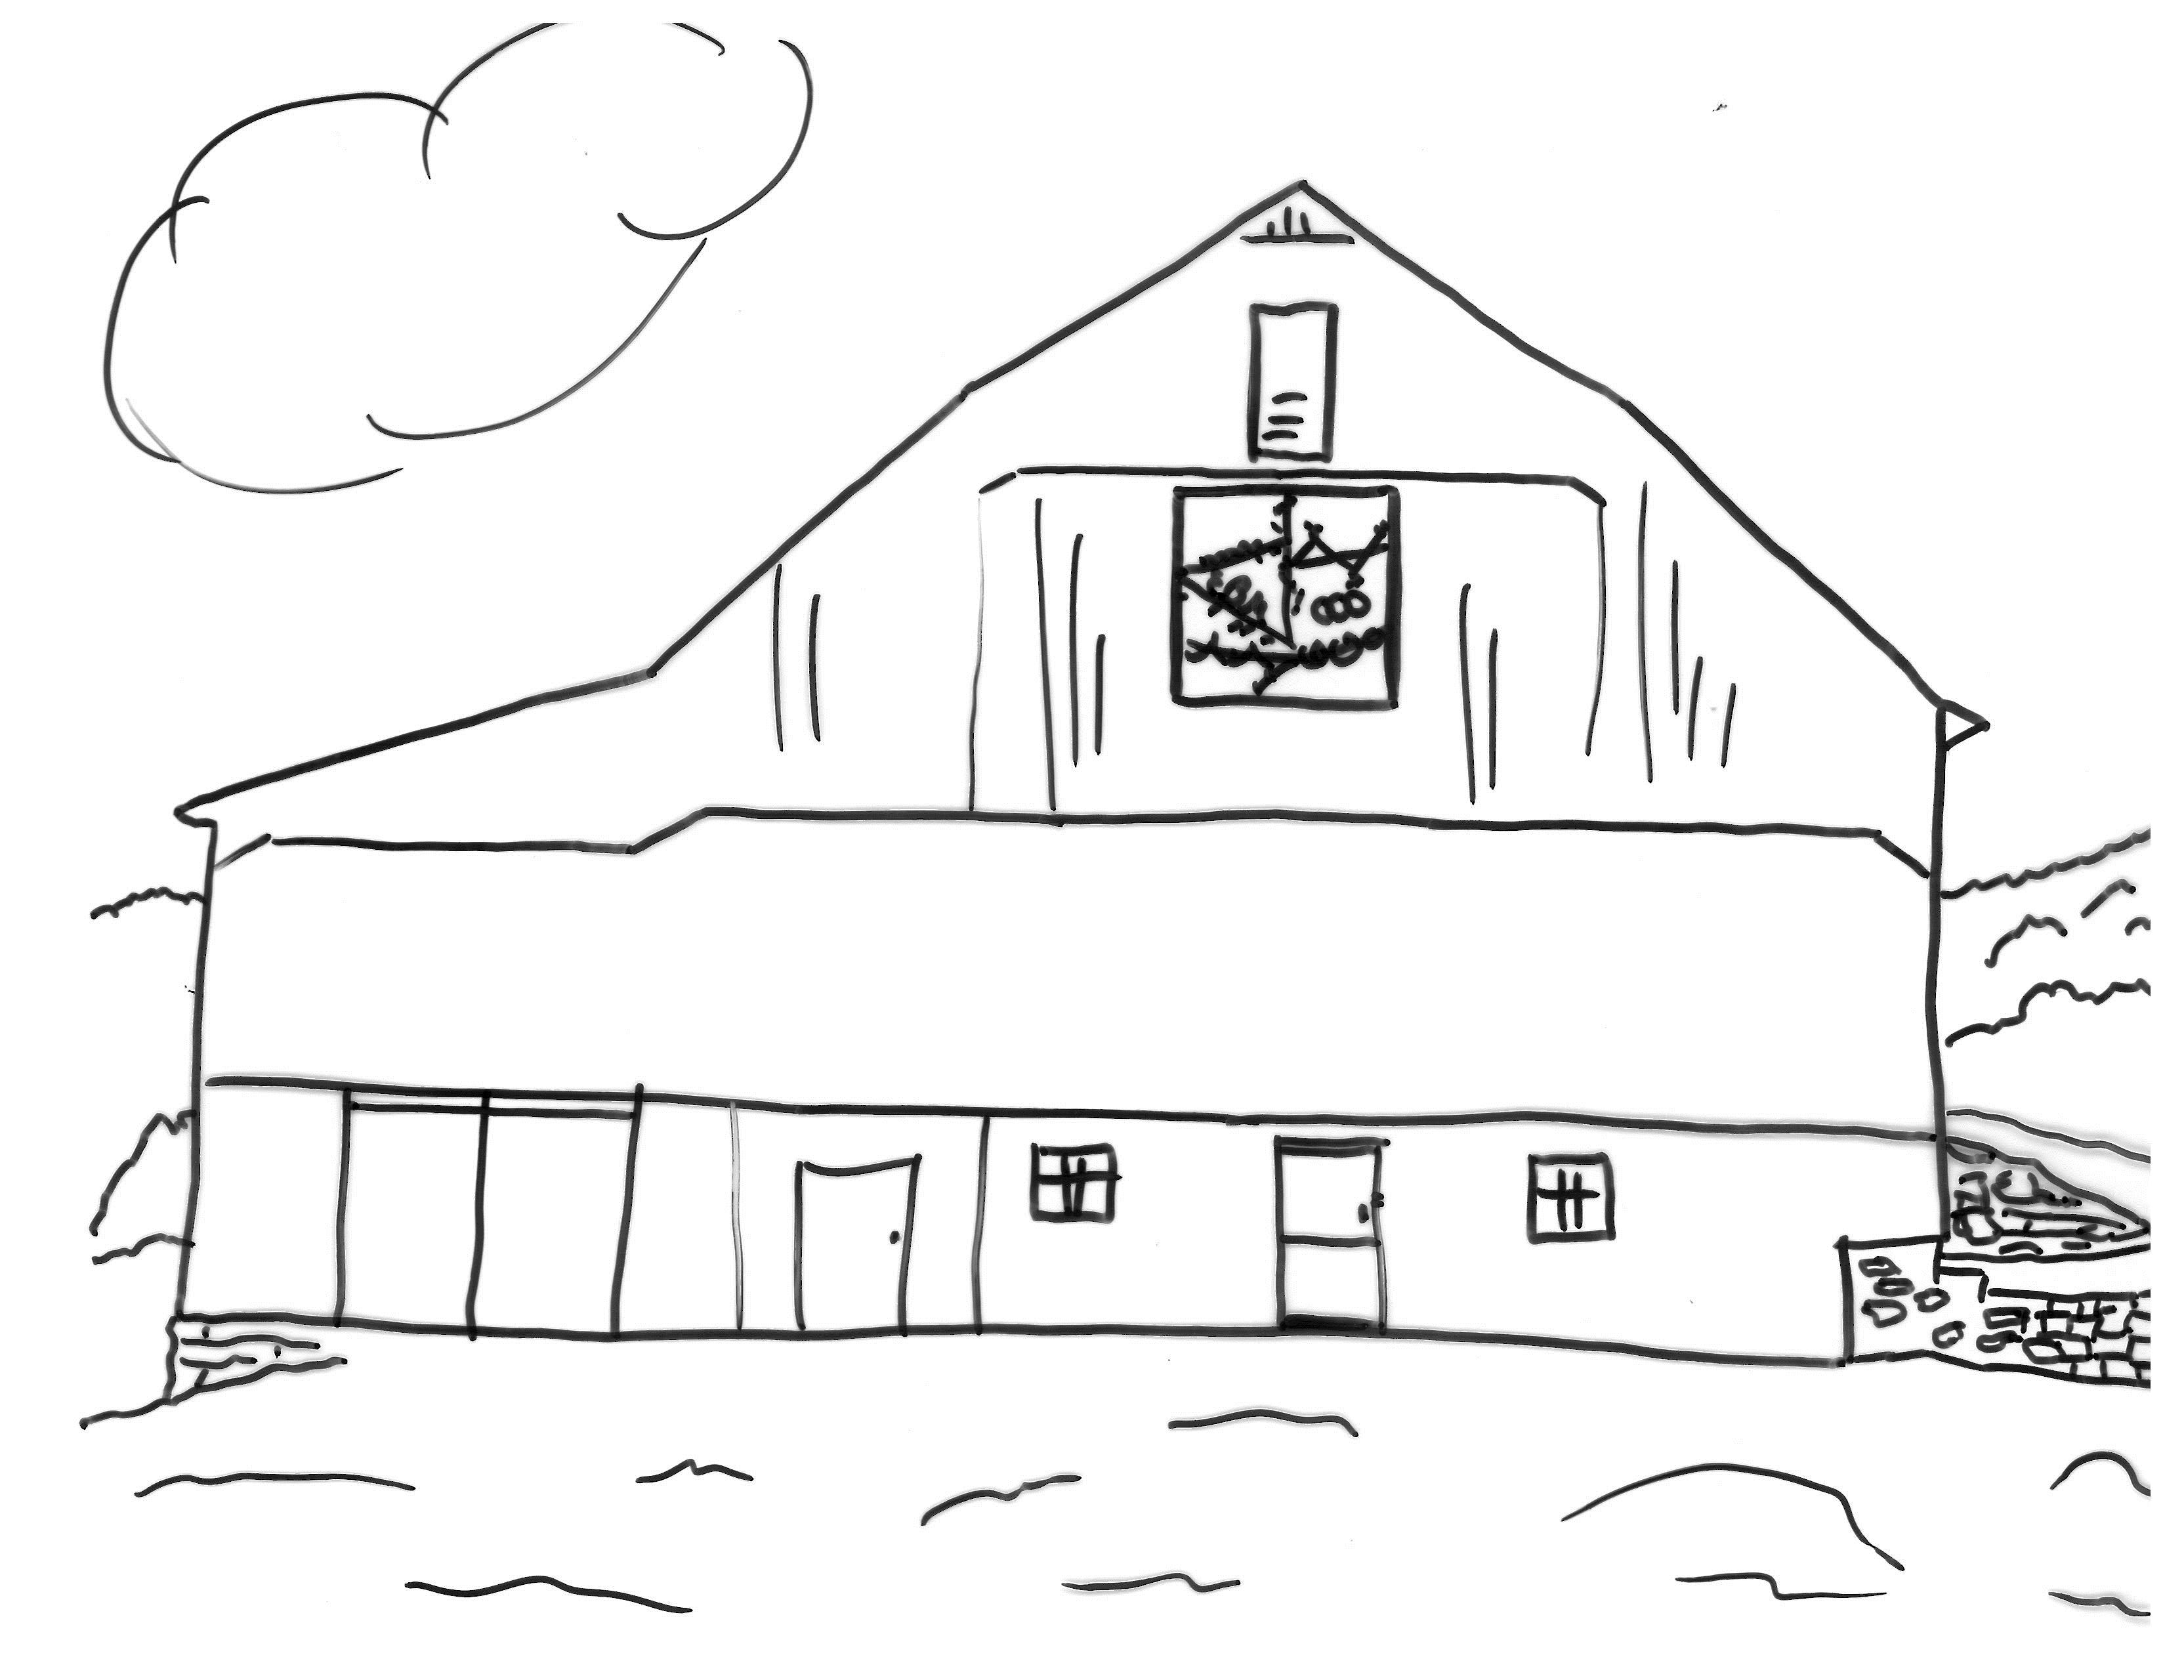 Maryland Coloring Pages At Getdrawings Com Free For Personal Use